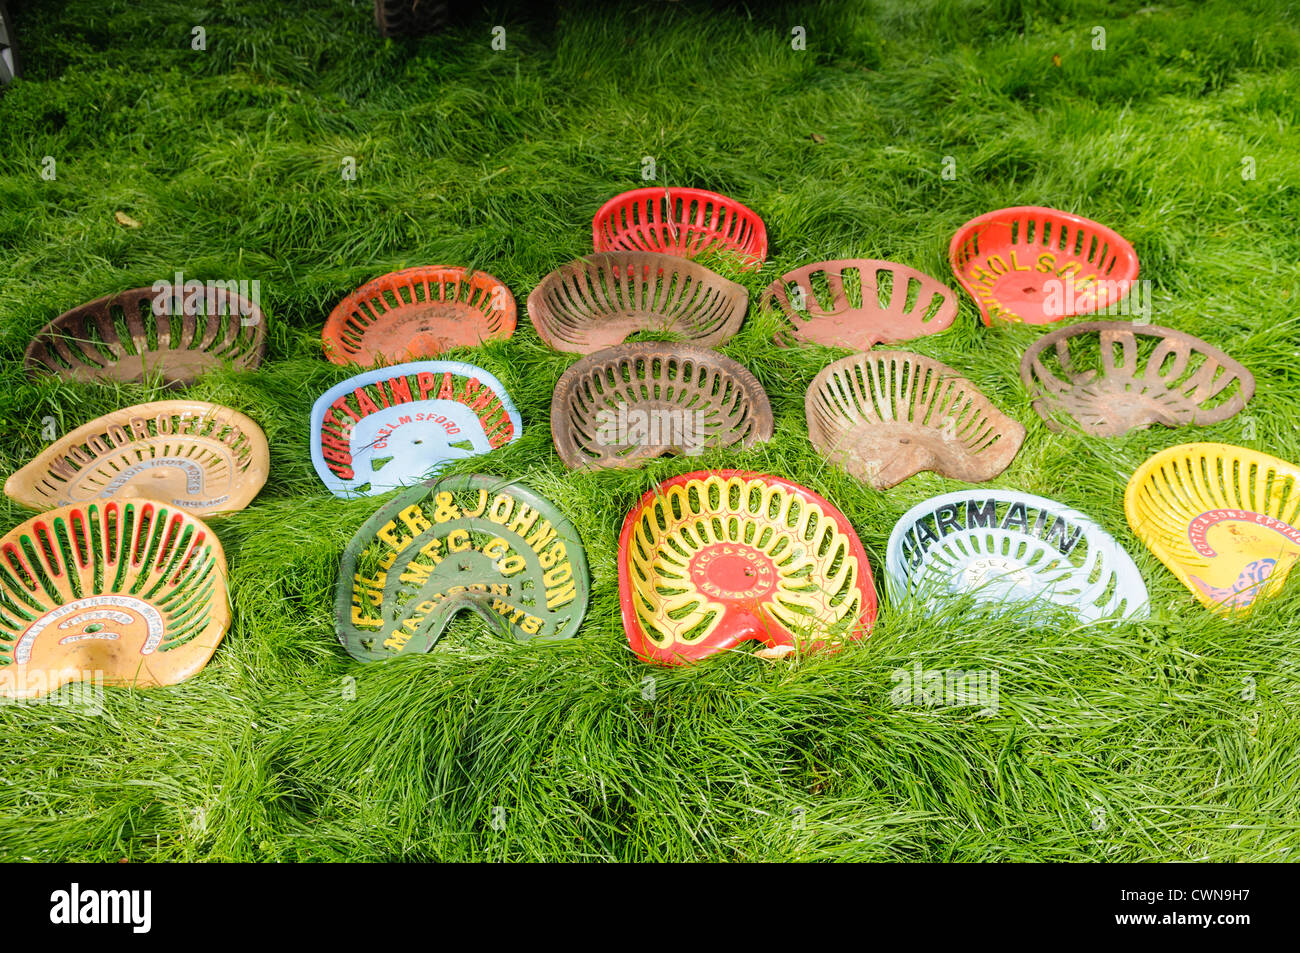 Collection of metal tractor seats from vintage tractors